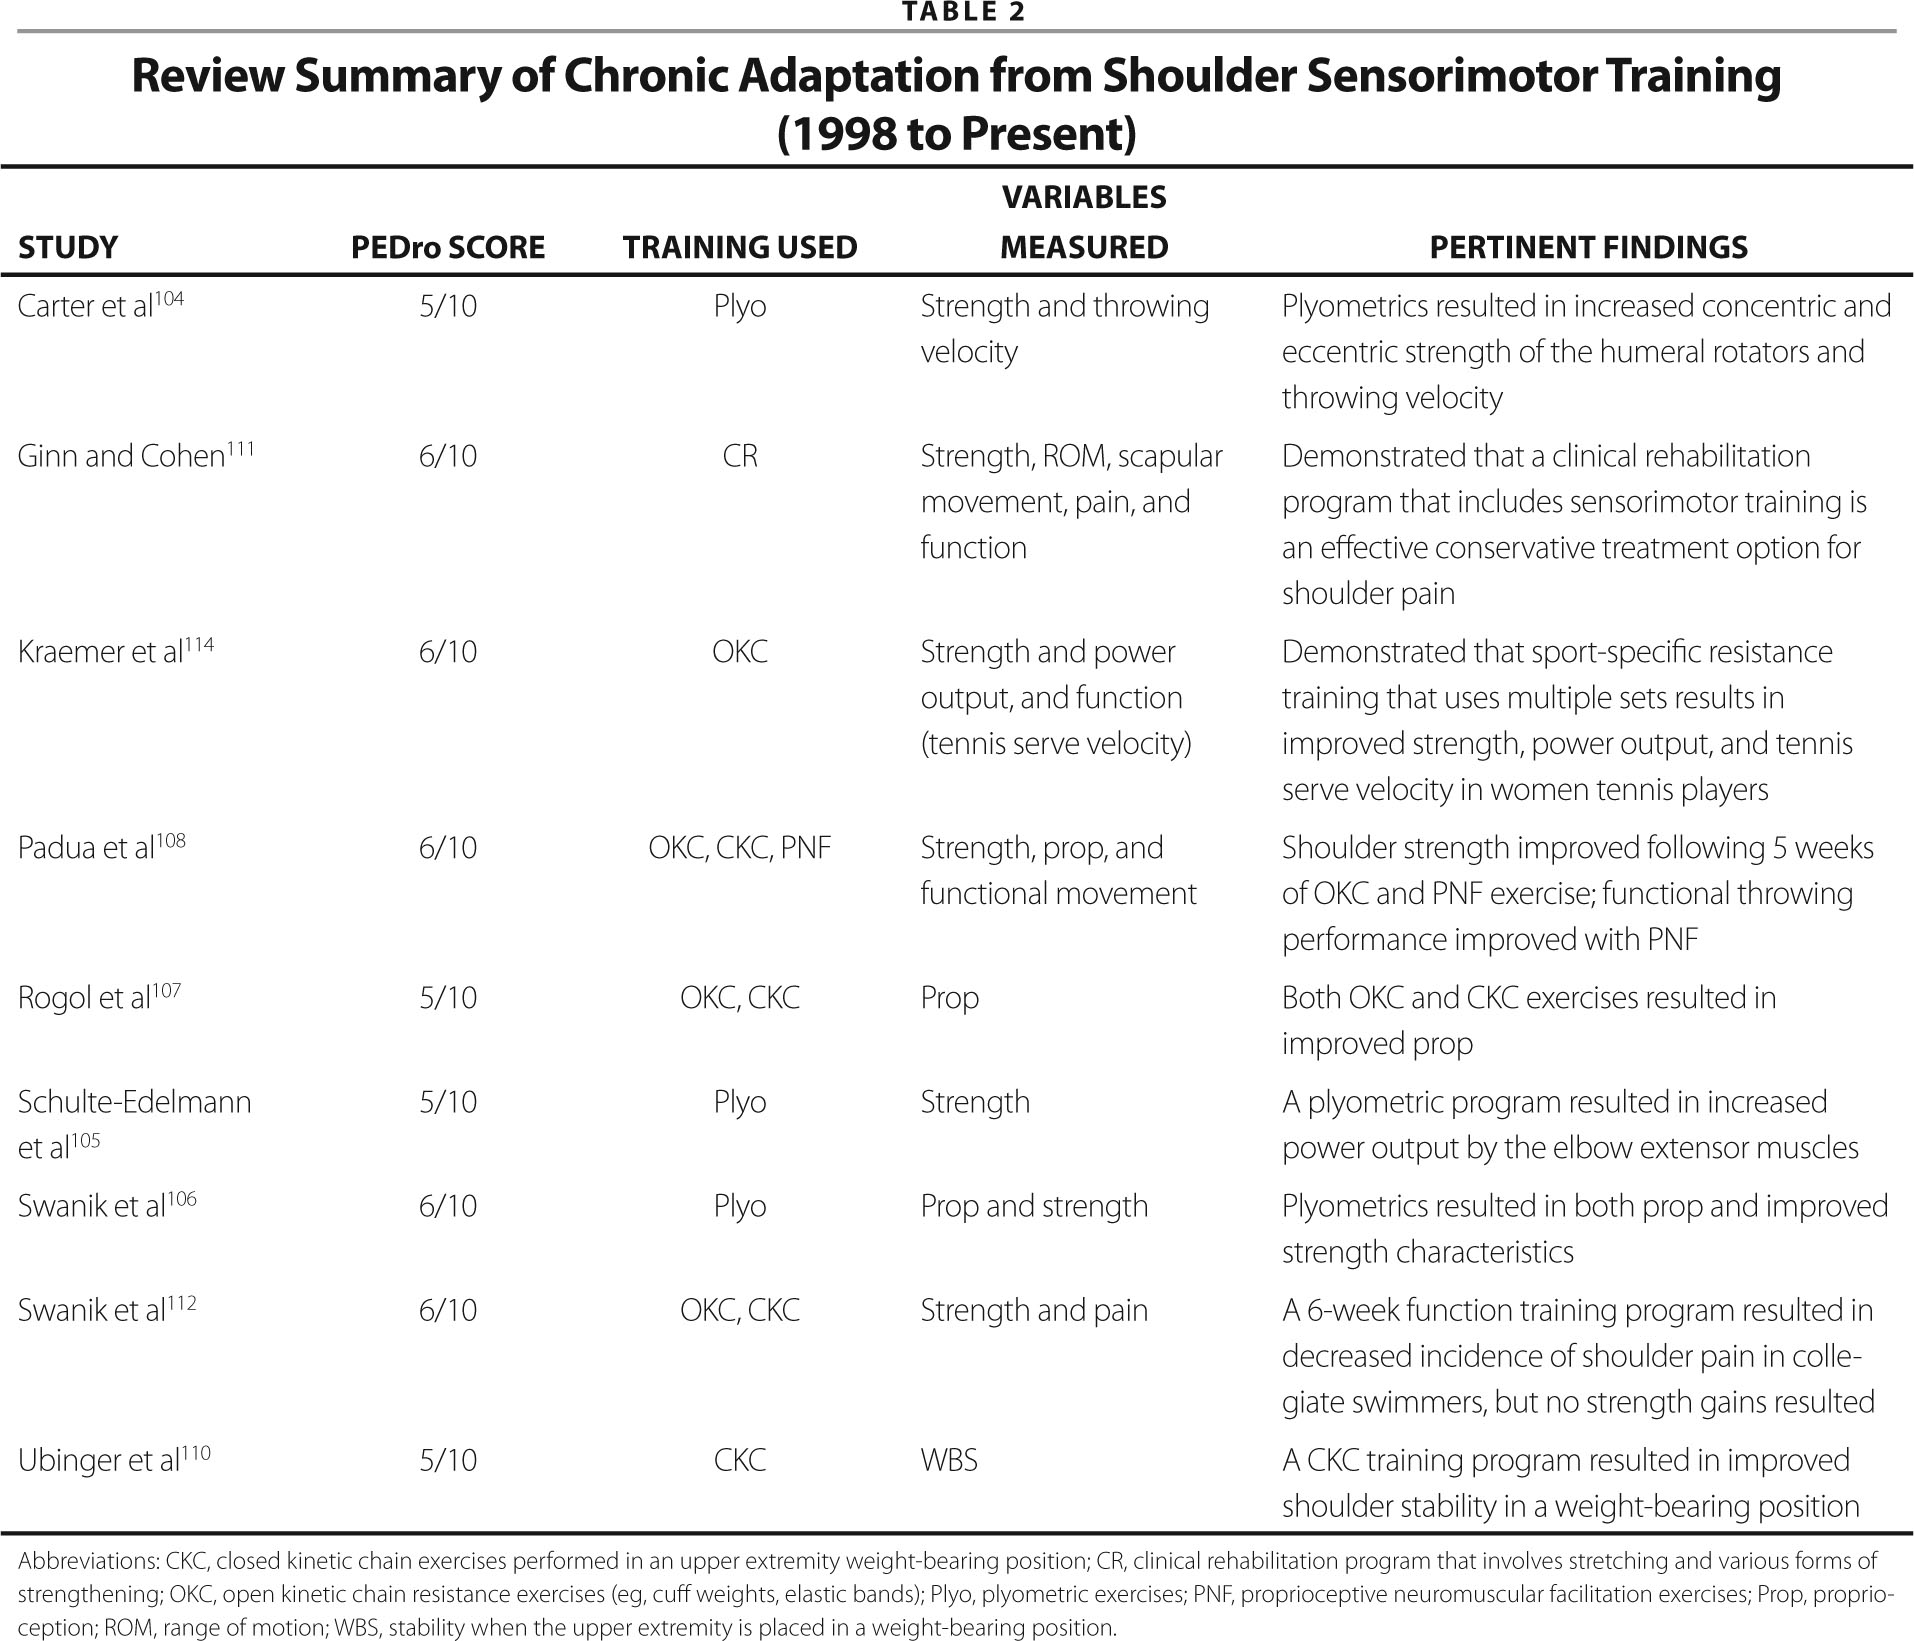 Review Summary of Chronic Adaptation from Shoulder Sensorimotor Training (1998 to Present)